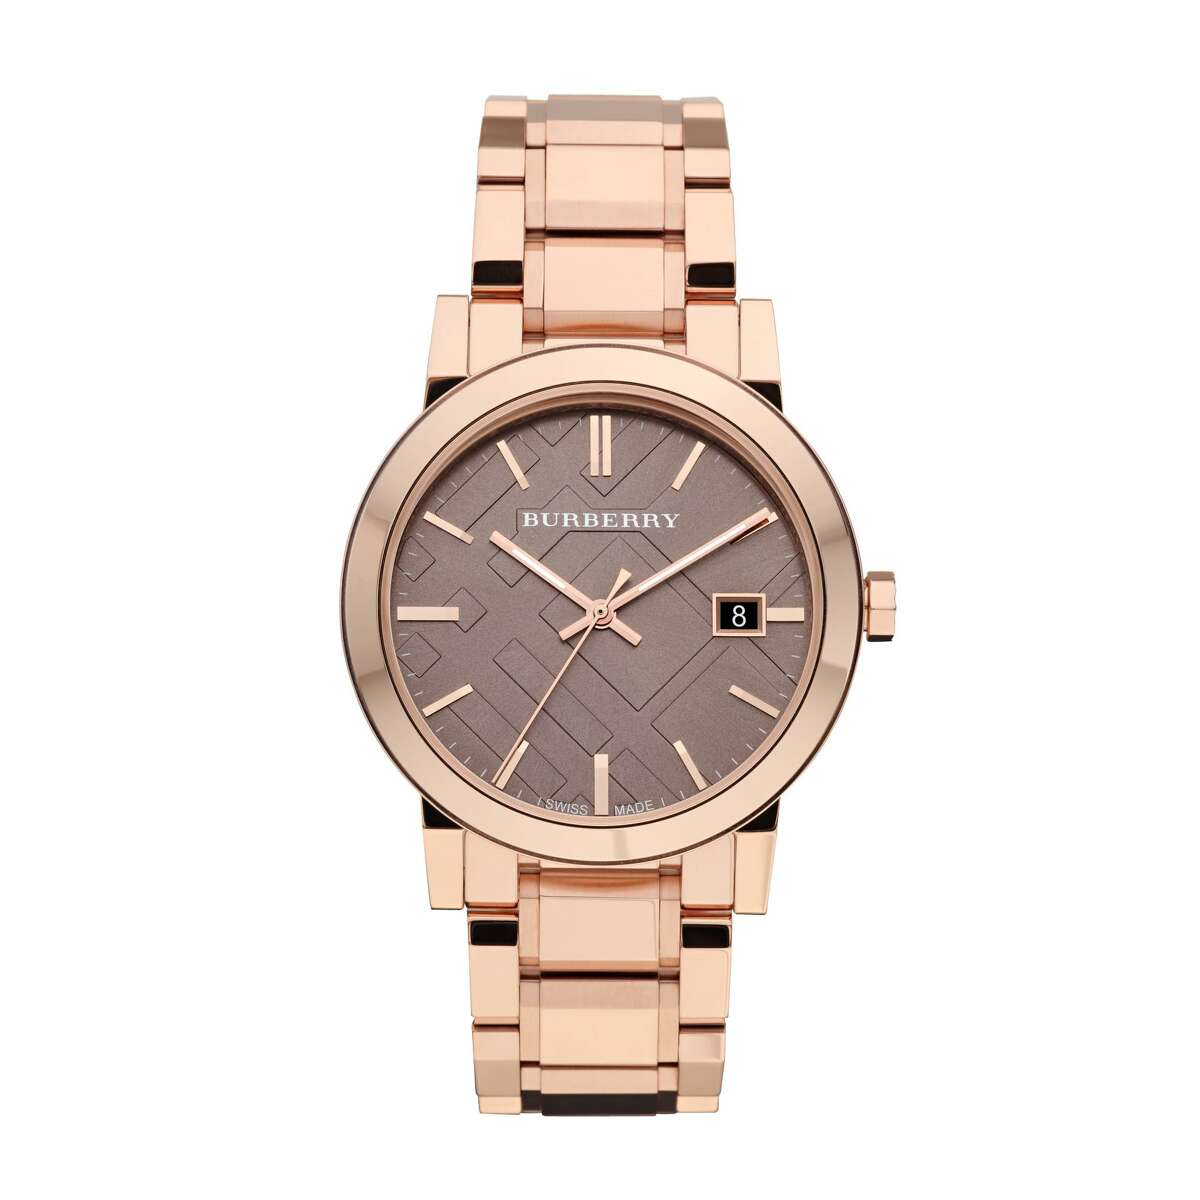 1 Burberry City watch in rose gold, $695 at Burberry and Nordstrom